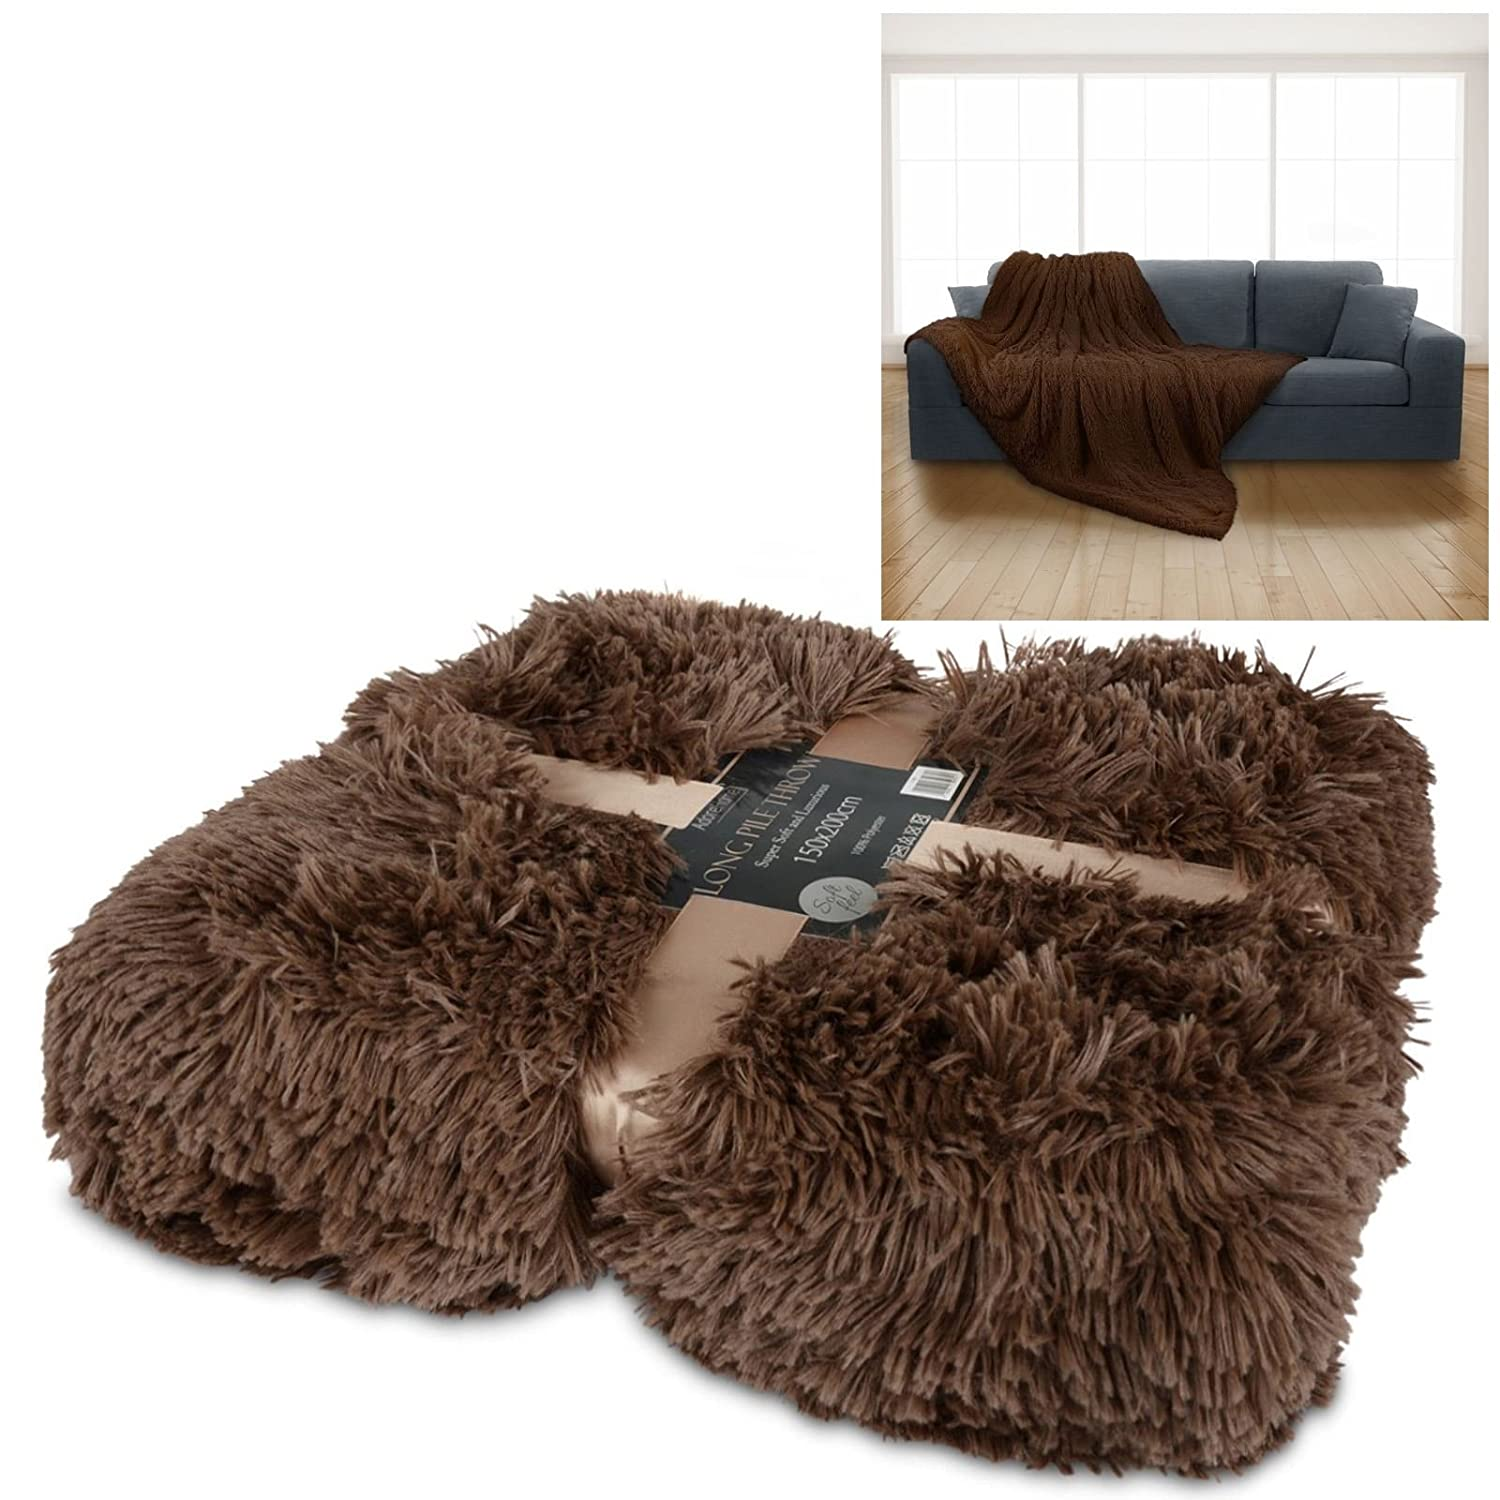 Luxury Long Pile Throw Snuggle Blanket Super Soft Faux Fur Warm Karpet Shaggy Premium 160x230 Turkiye Cover 150x200cm For Bed Sofa Home Camping With Gift Ribbon Mocha